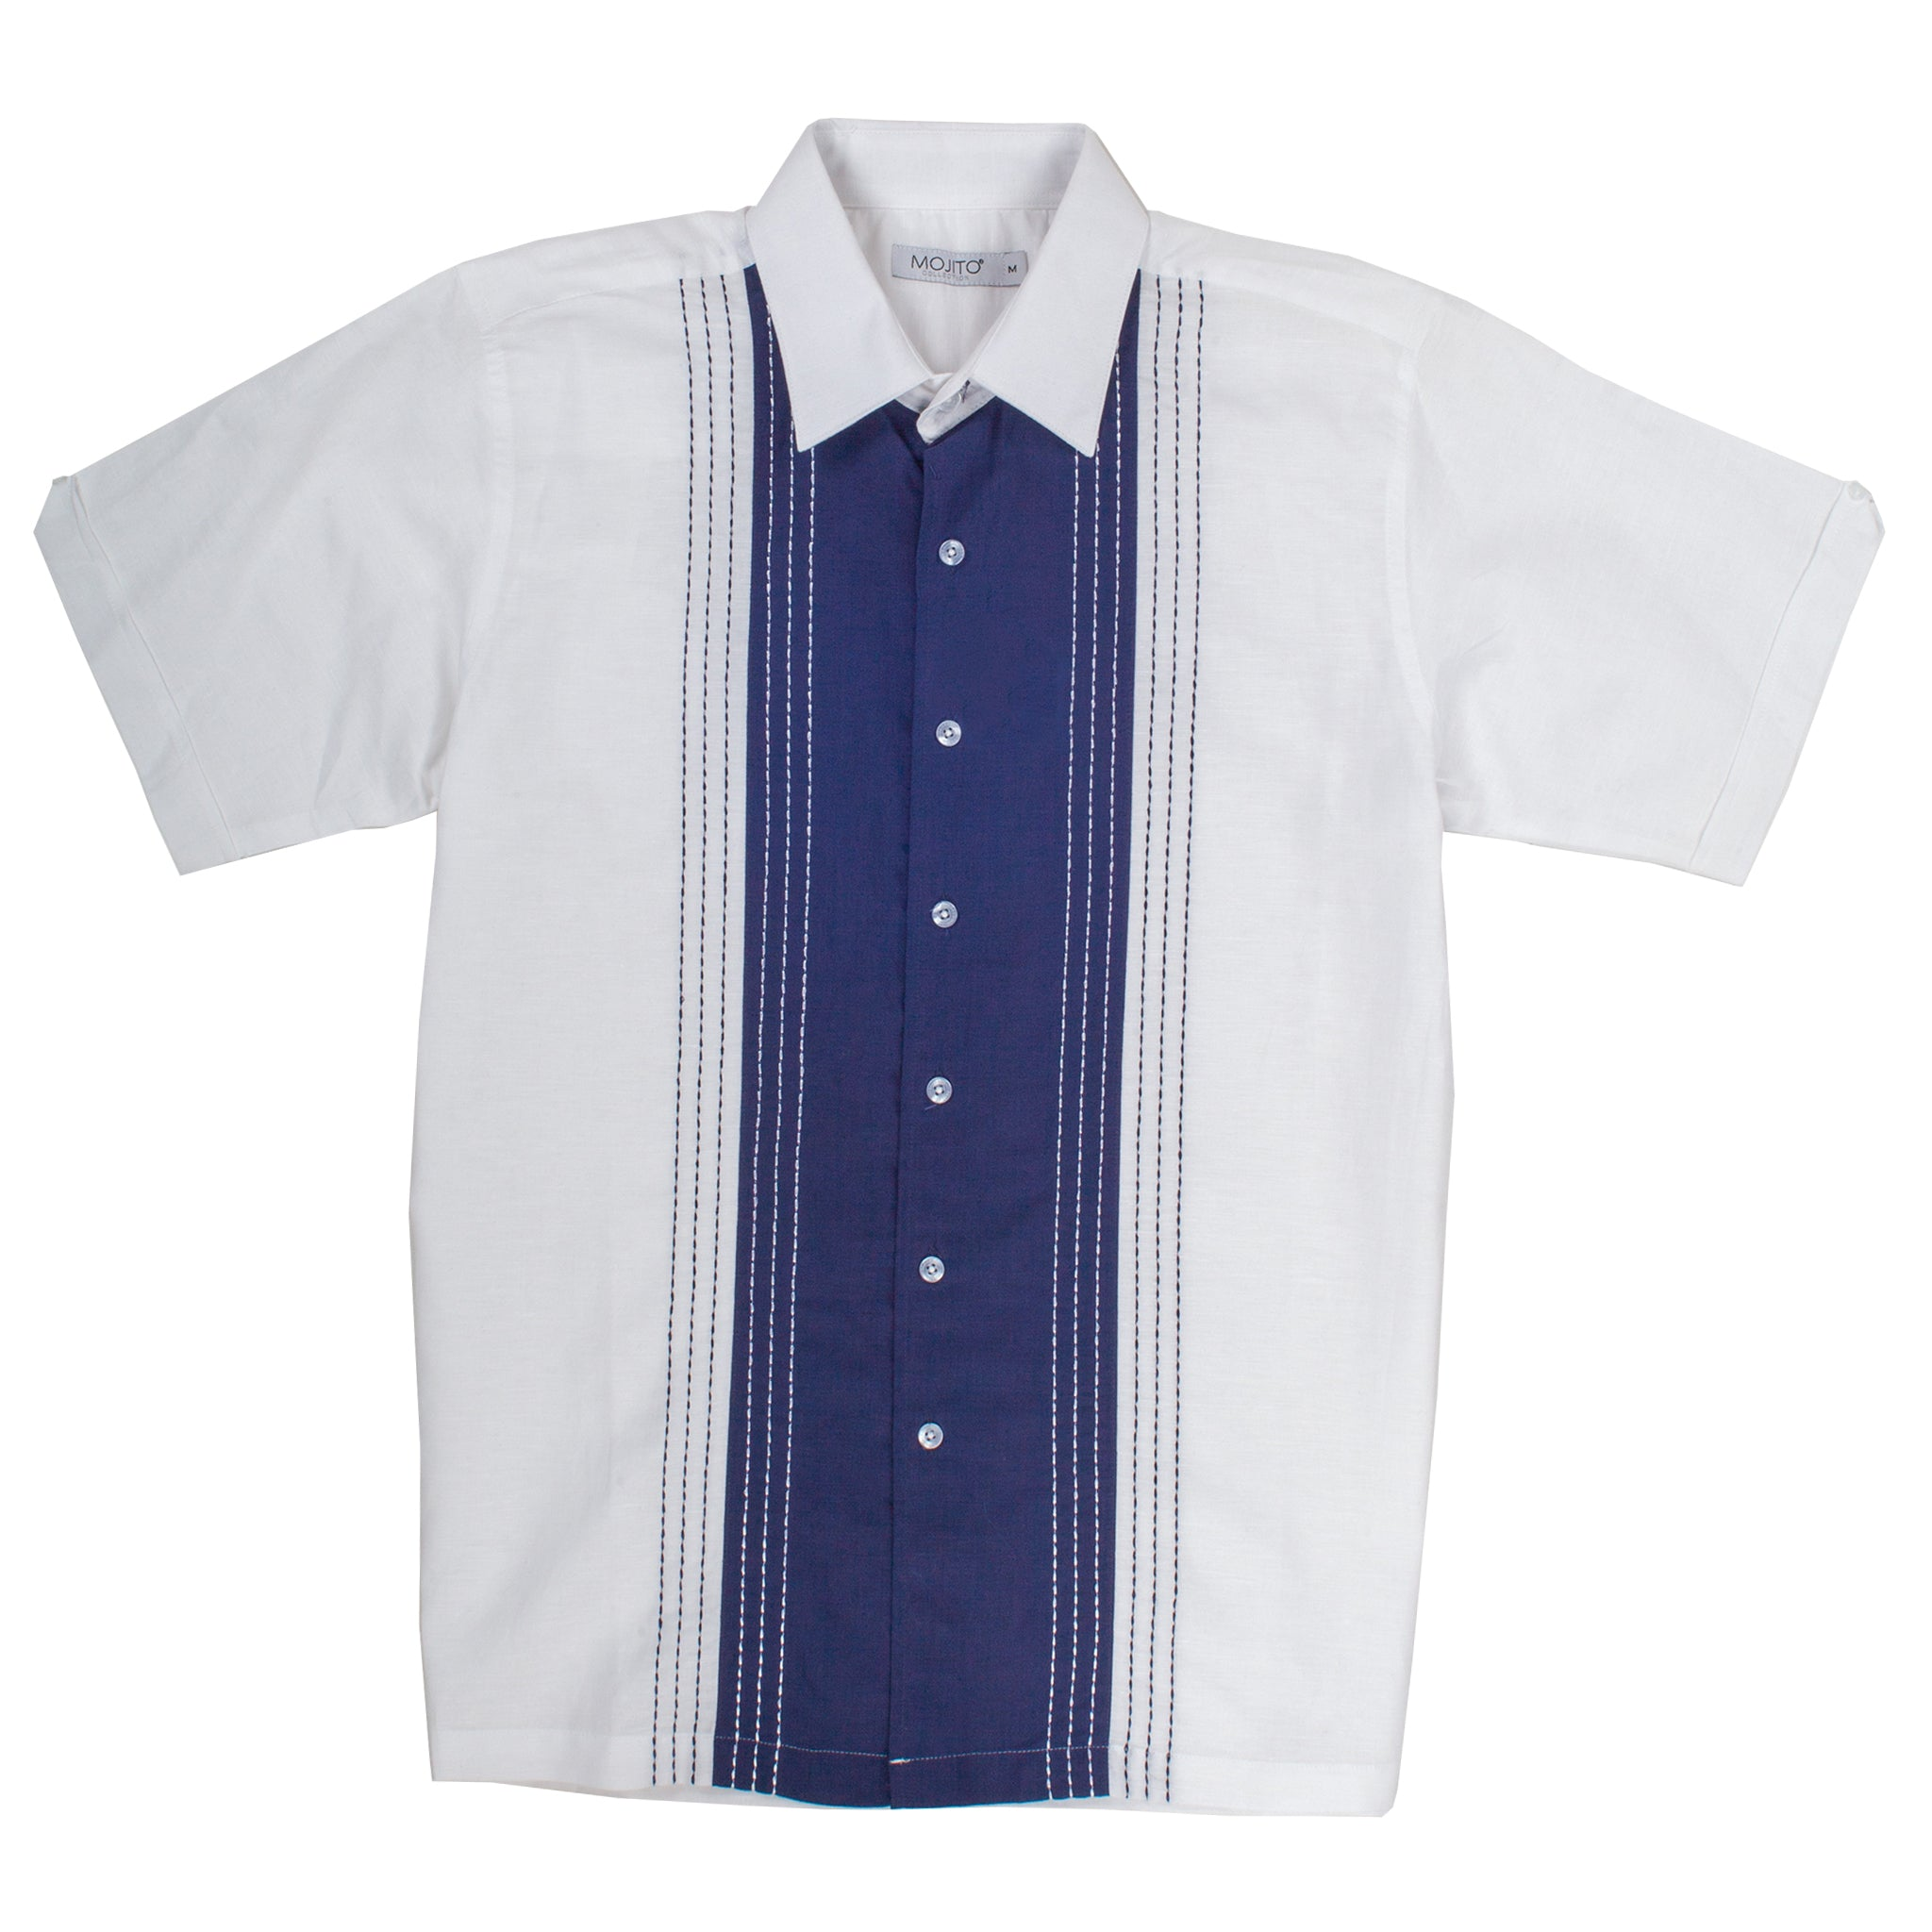 LINEN SHORT SLEEVE SHIRT WHITE/NAVY